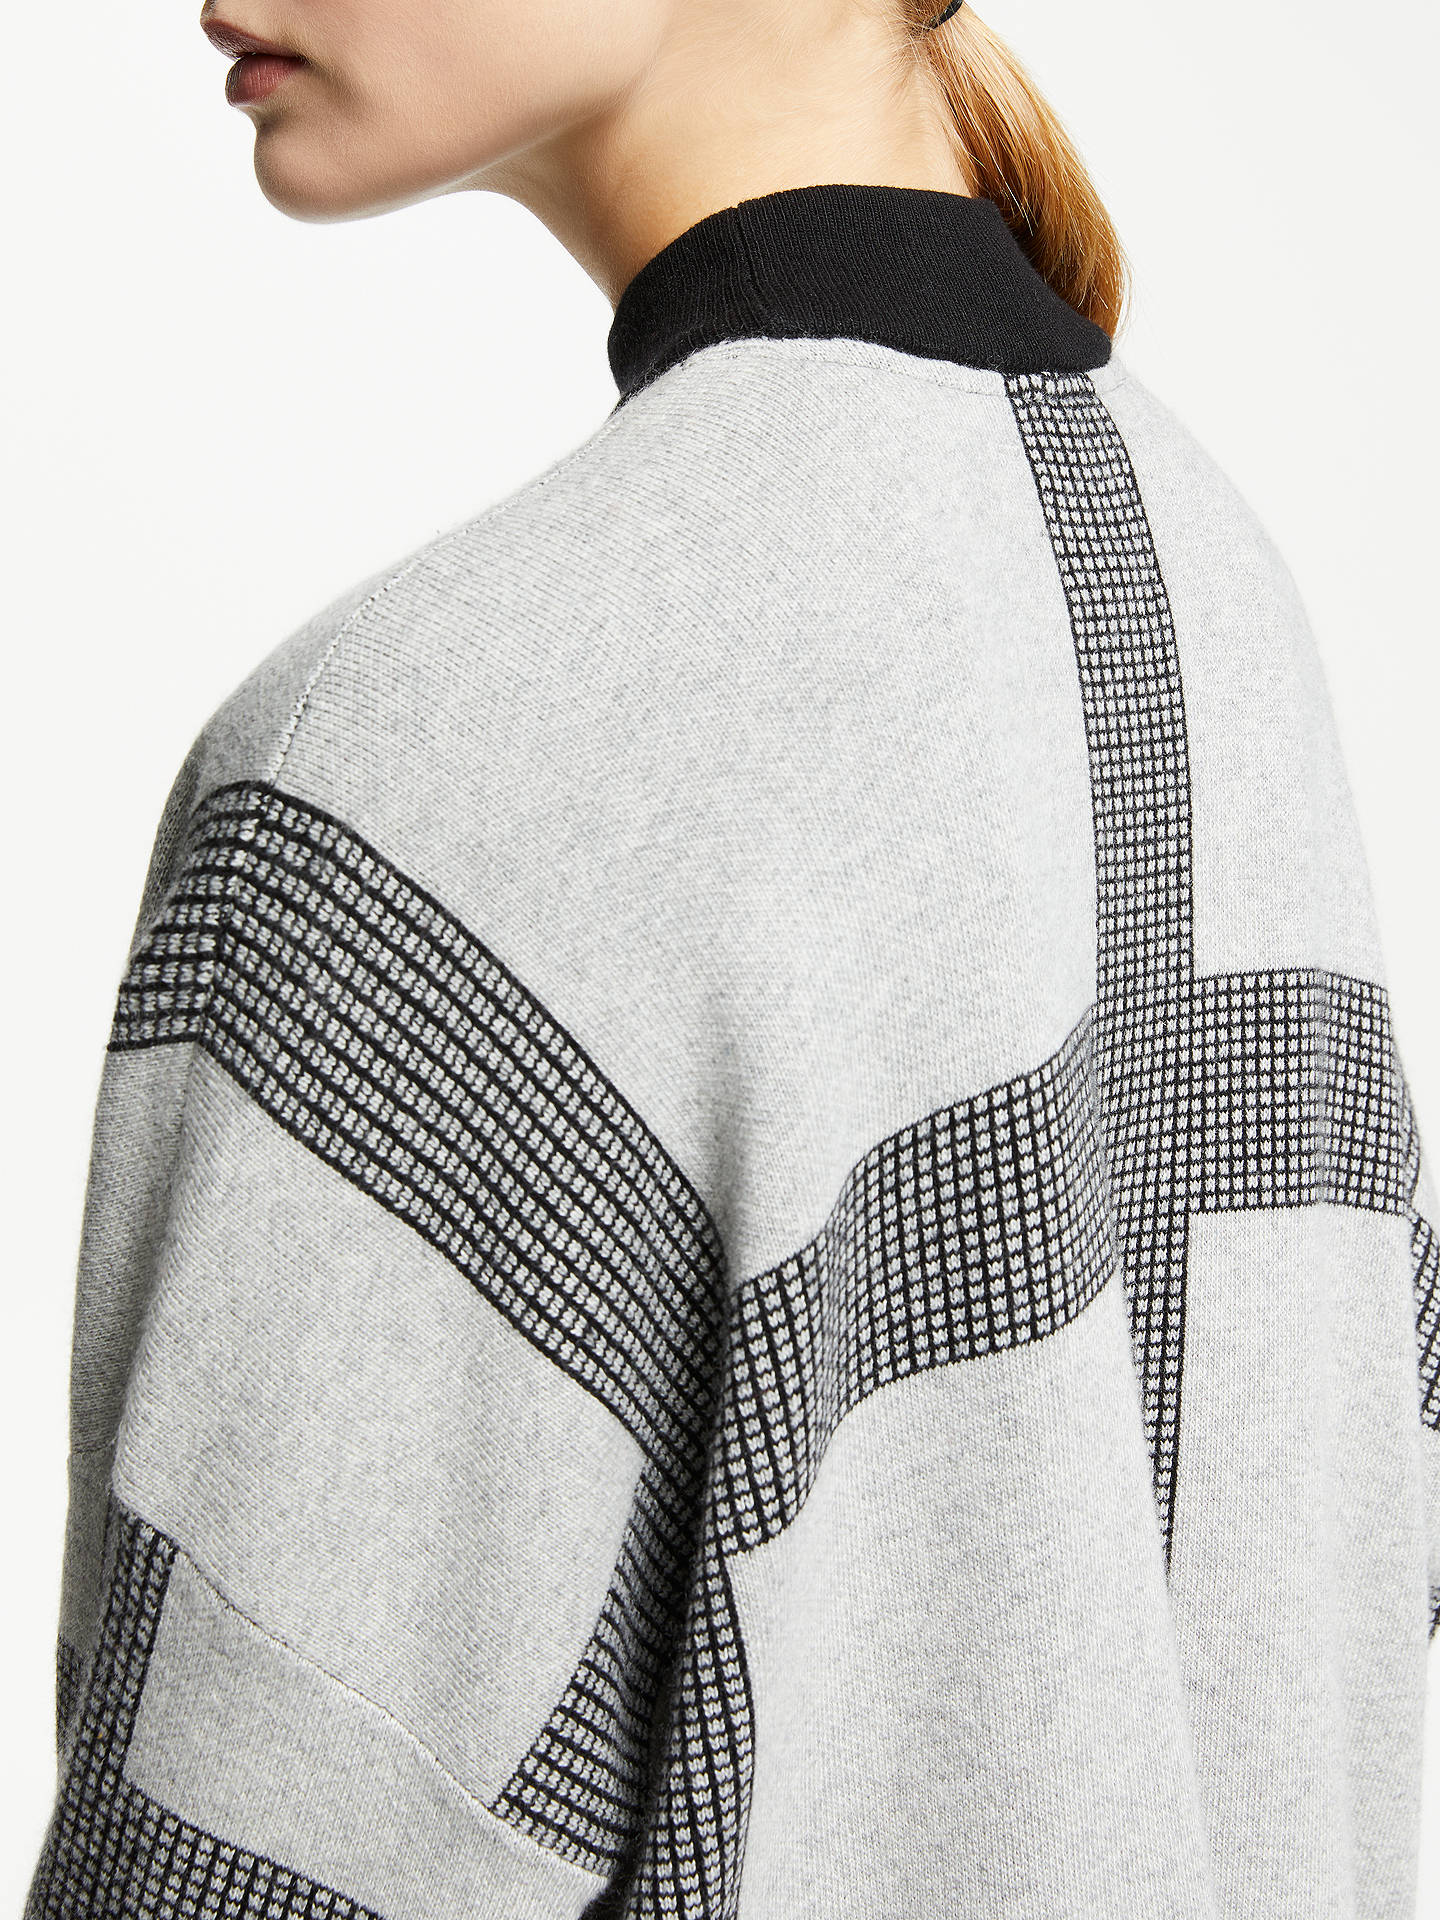 Buy PATTERNITY + John Lewis Micro Macro Oversized Jumper, Grey, S Online at johnlewis.com